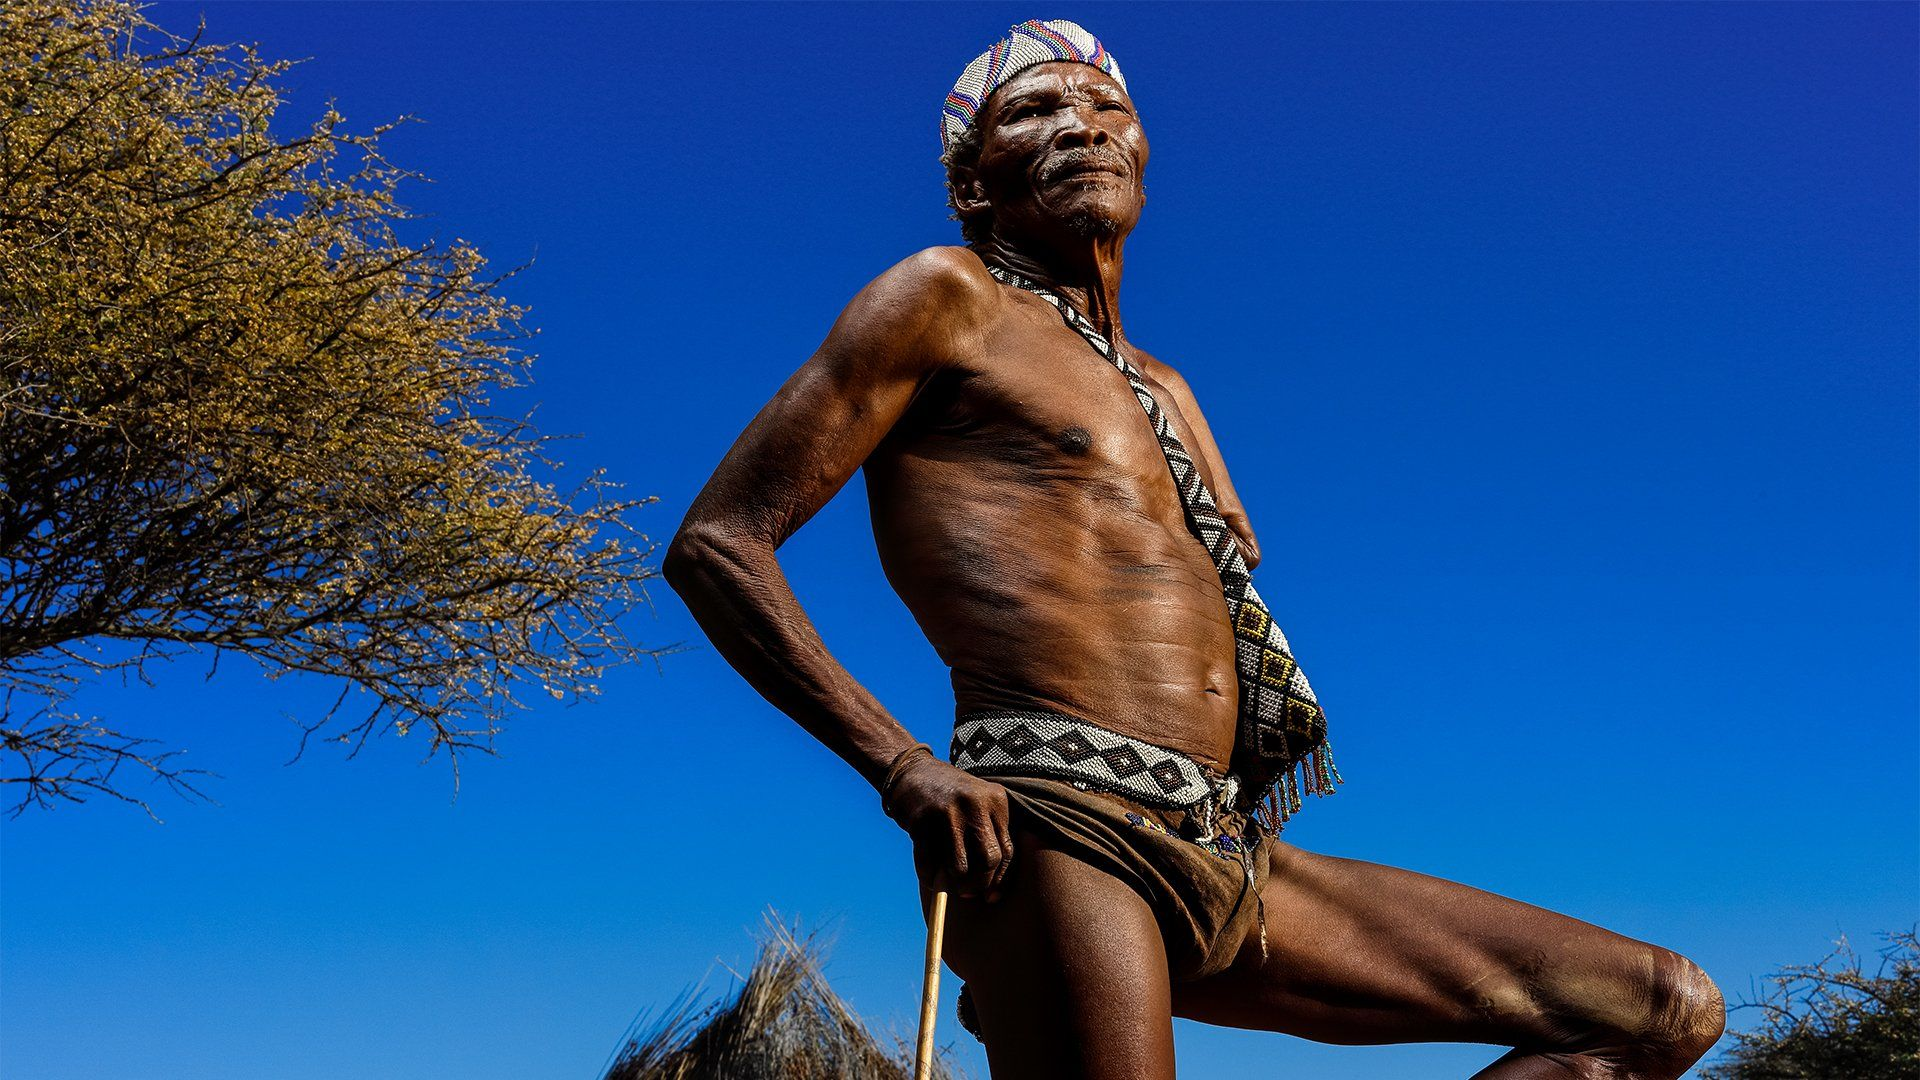 Brent Stirton capturing a namibian male standing behind dark blue sky shot on the Canon EOS R & RF 50mm f/1.2L USM